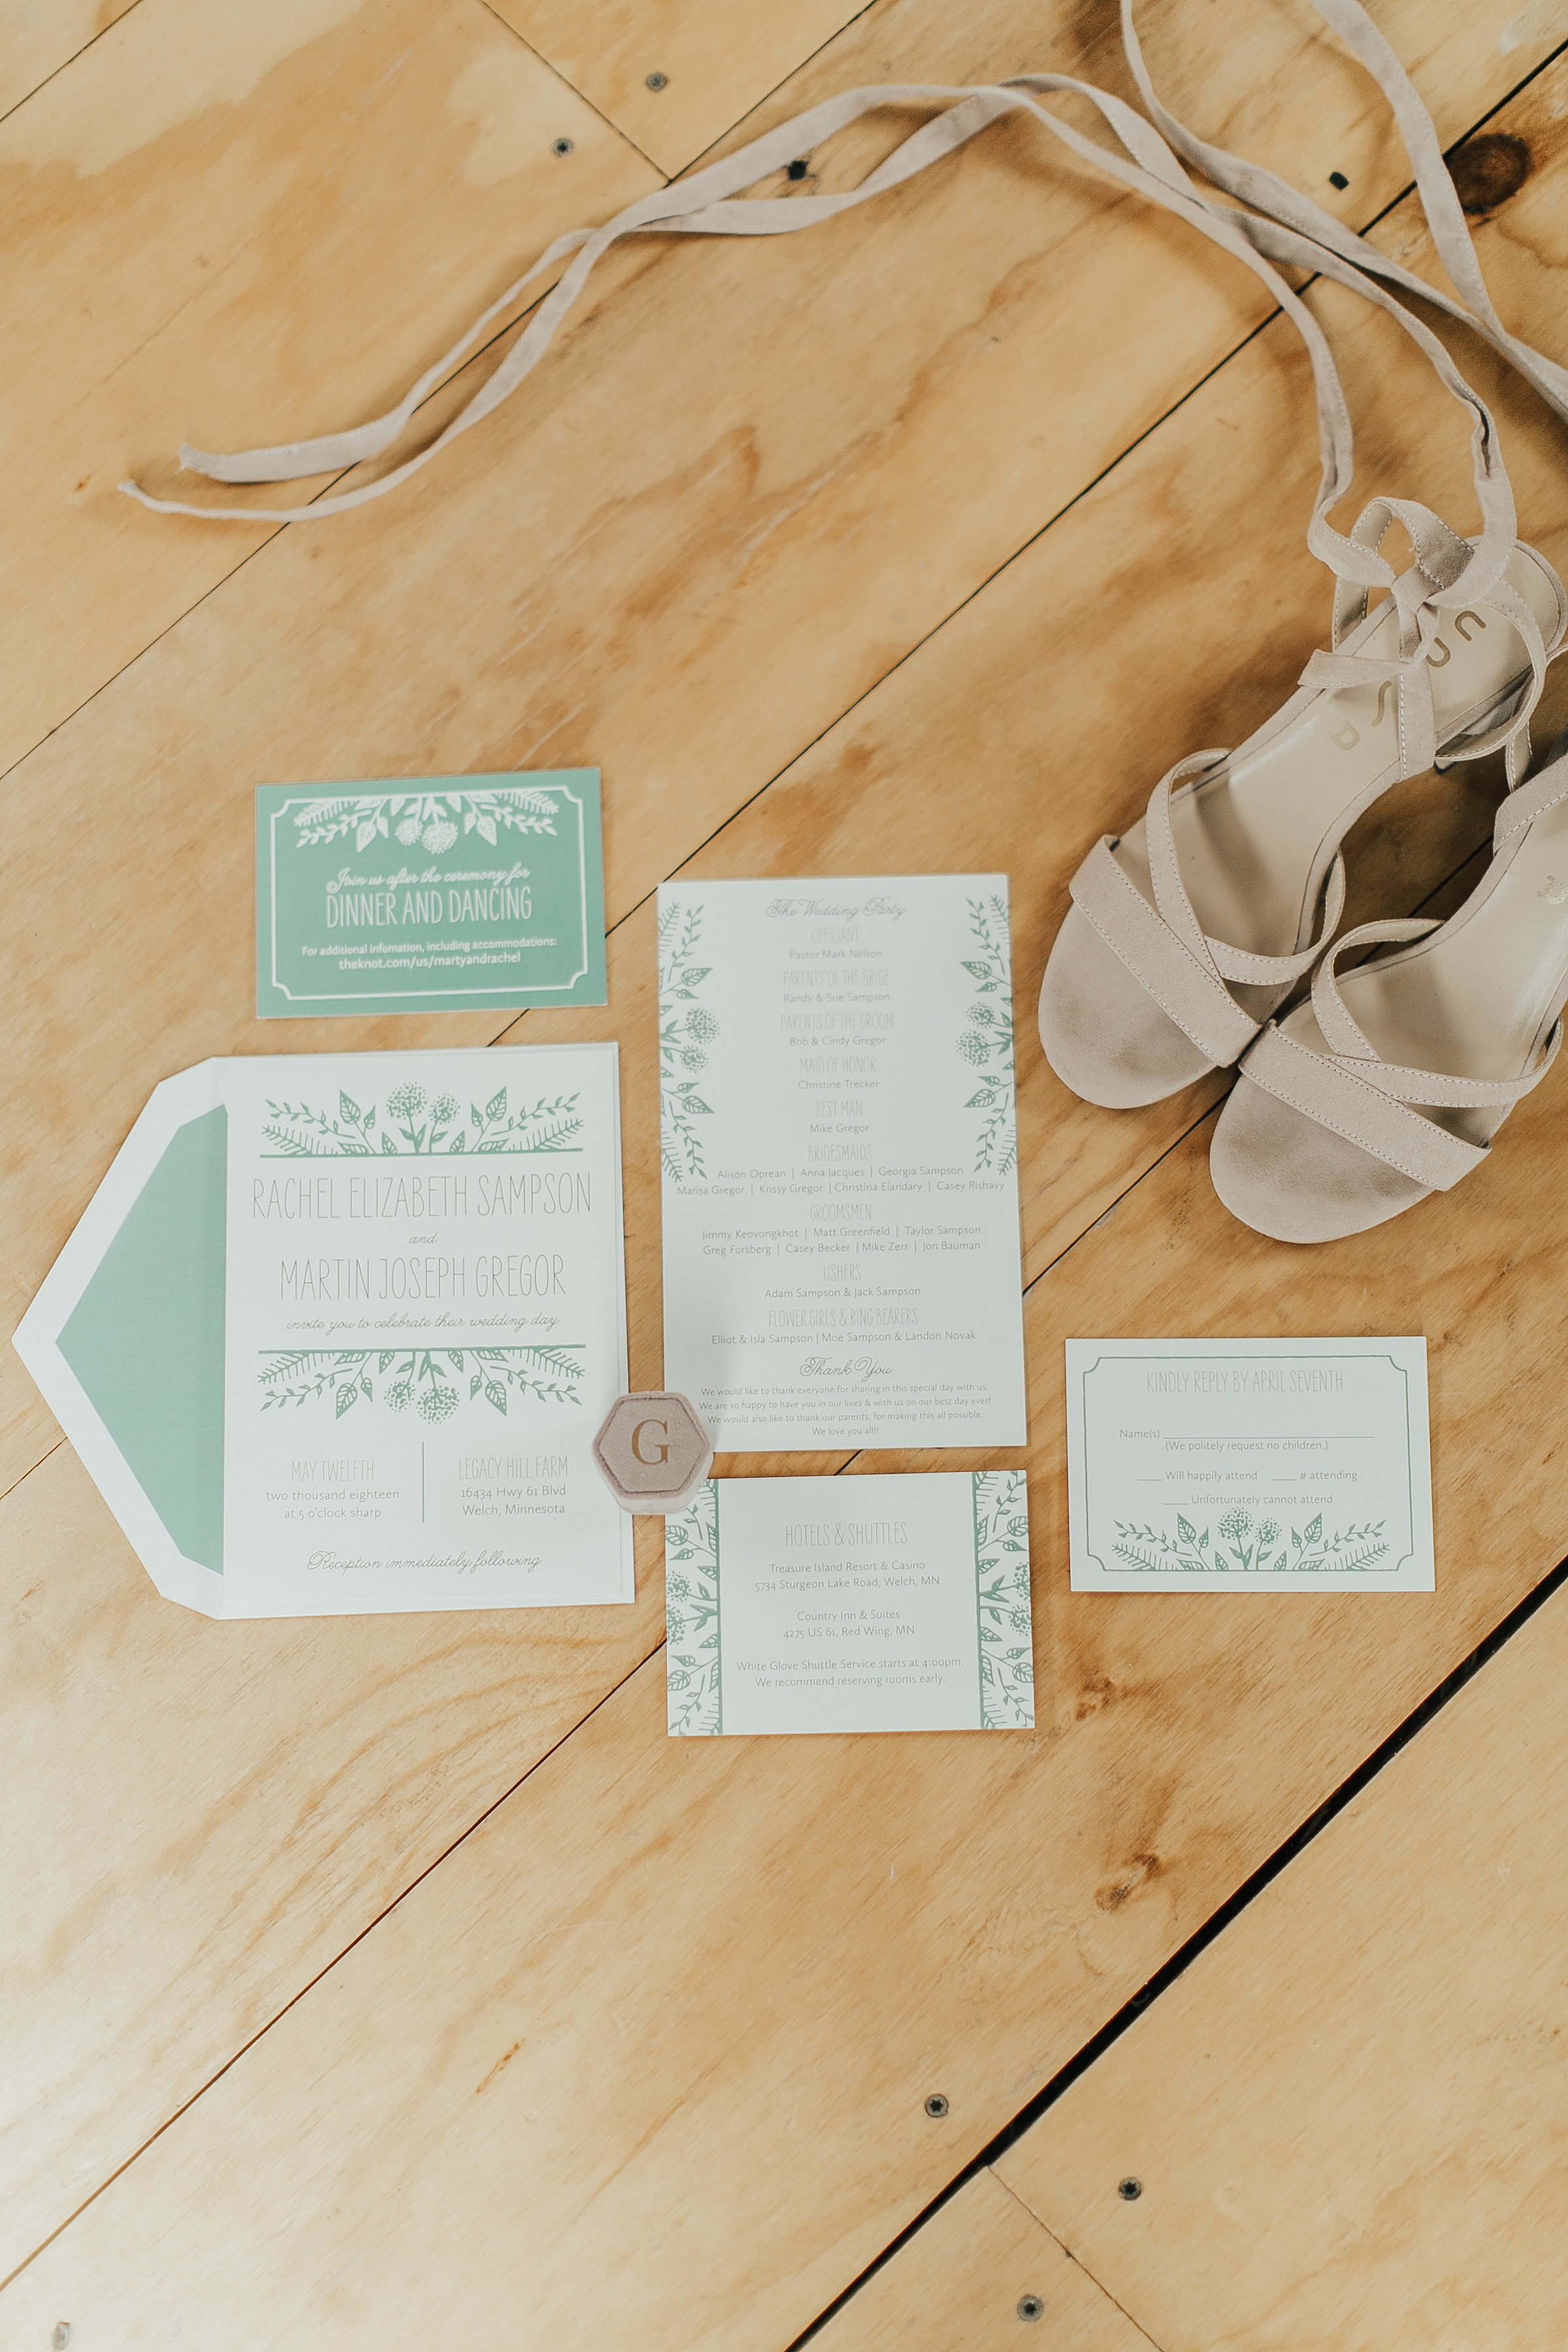 Legacy-Hil-Farm-Wedding-Invitations-MN.jpg